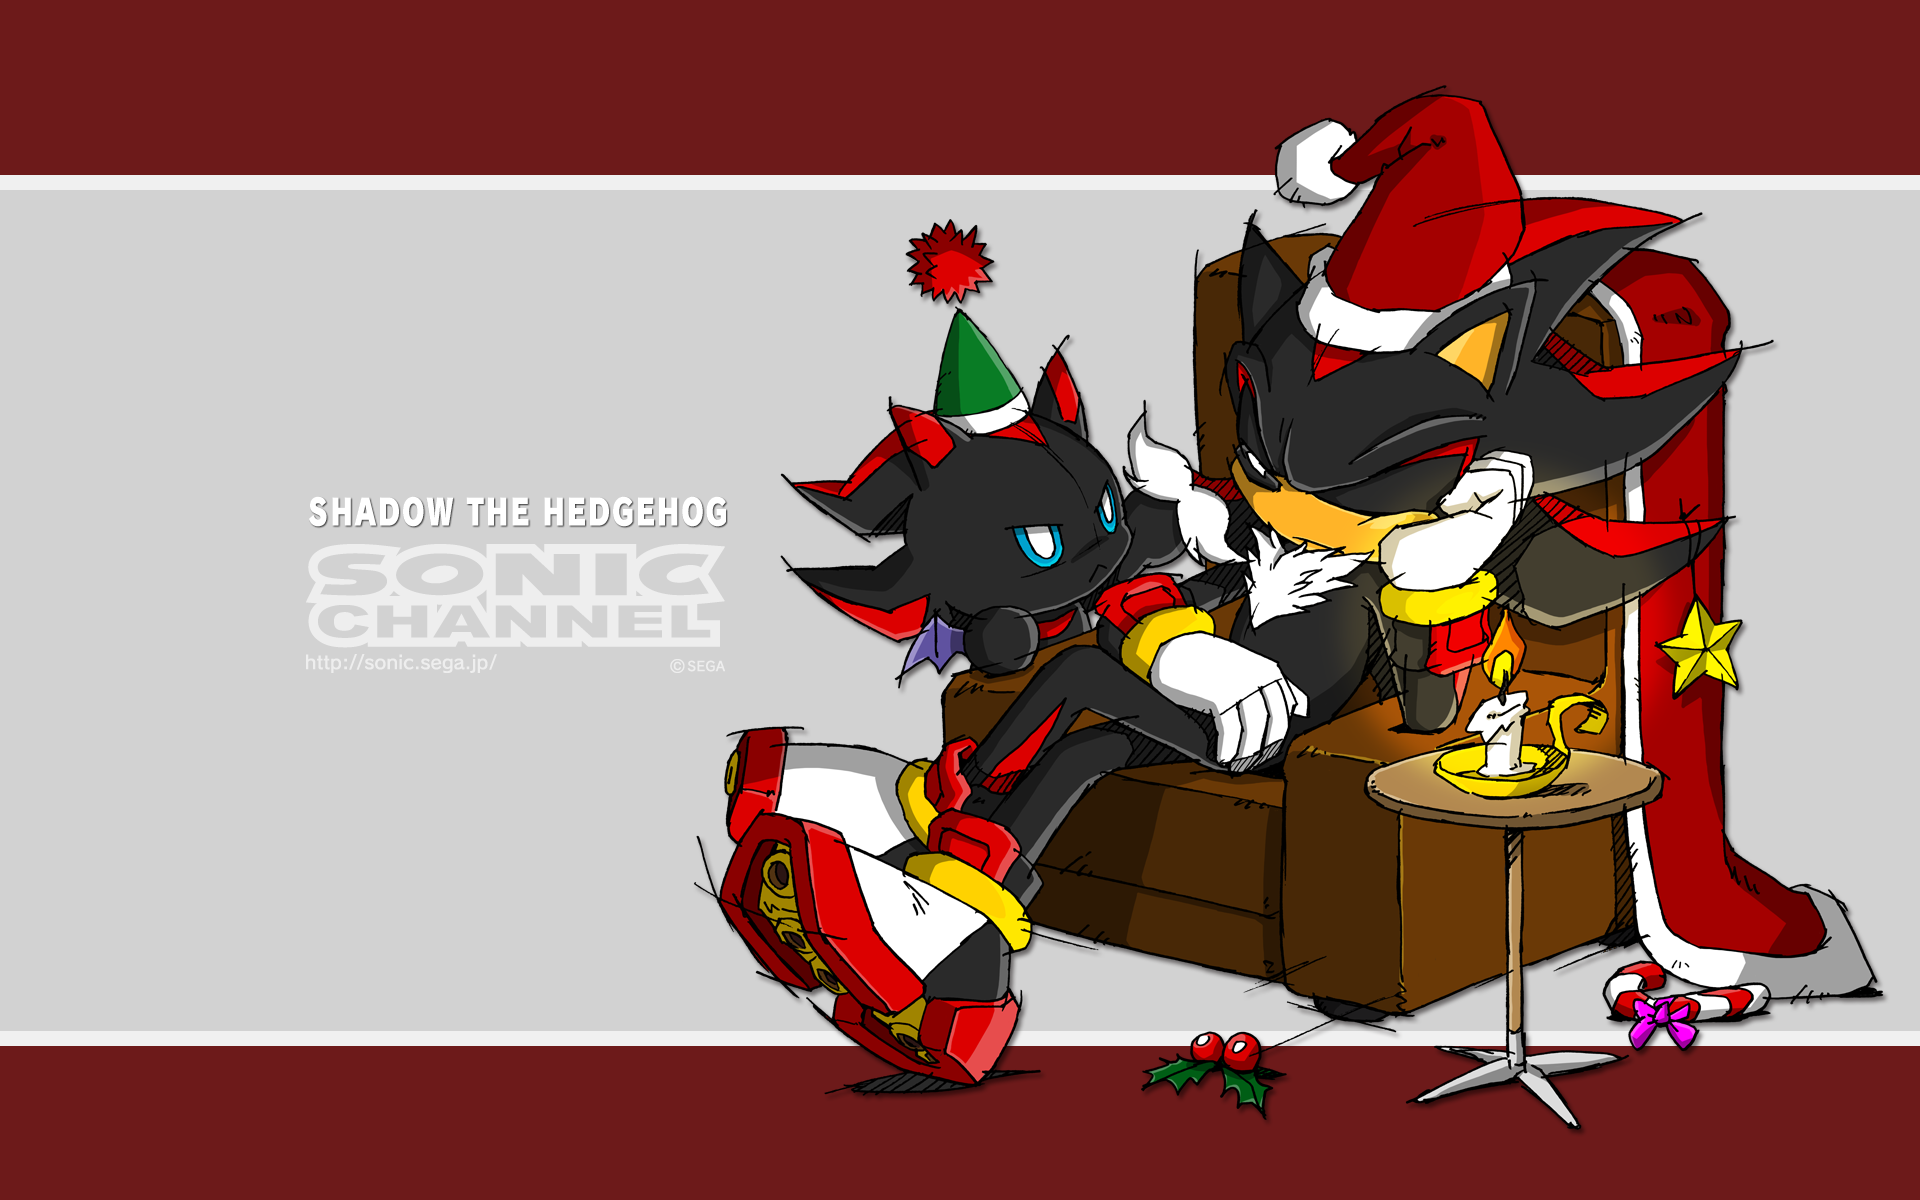 Shadow The Hedgehog December 2014 Sonic Channel Wallpaper